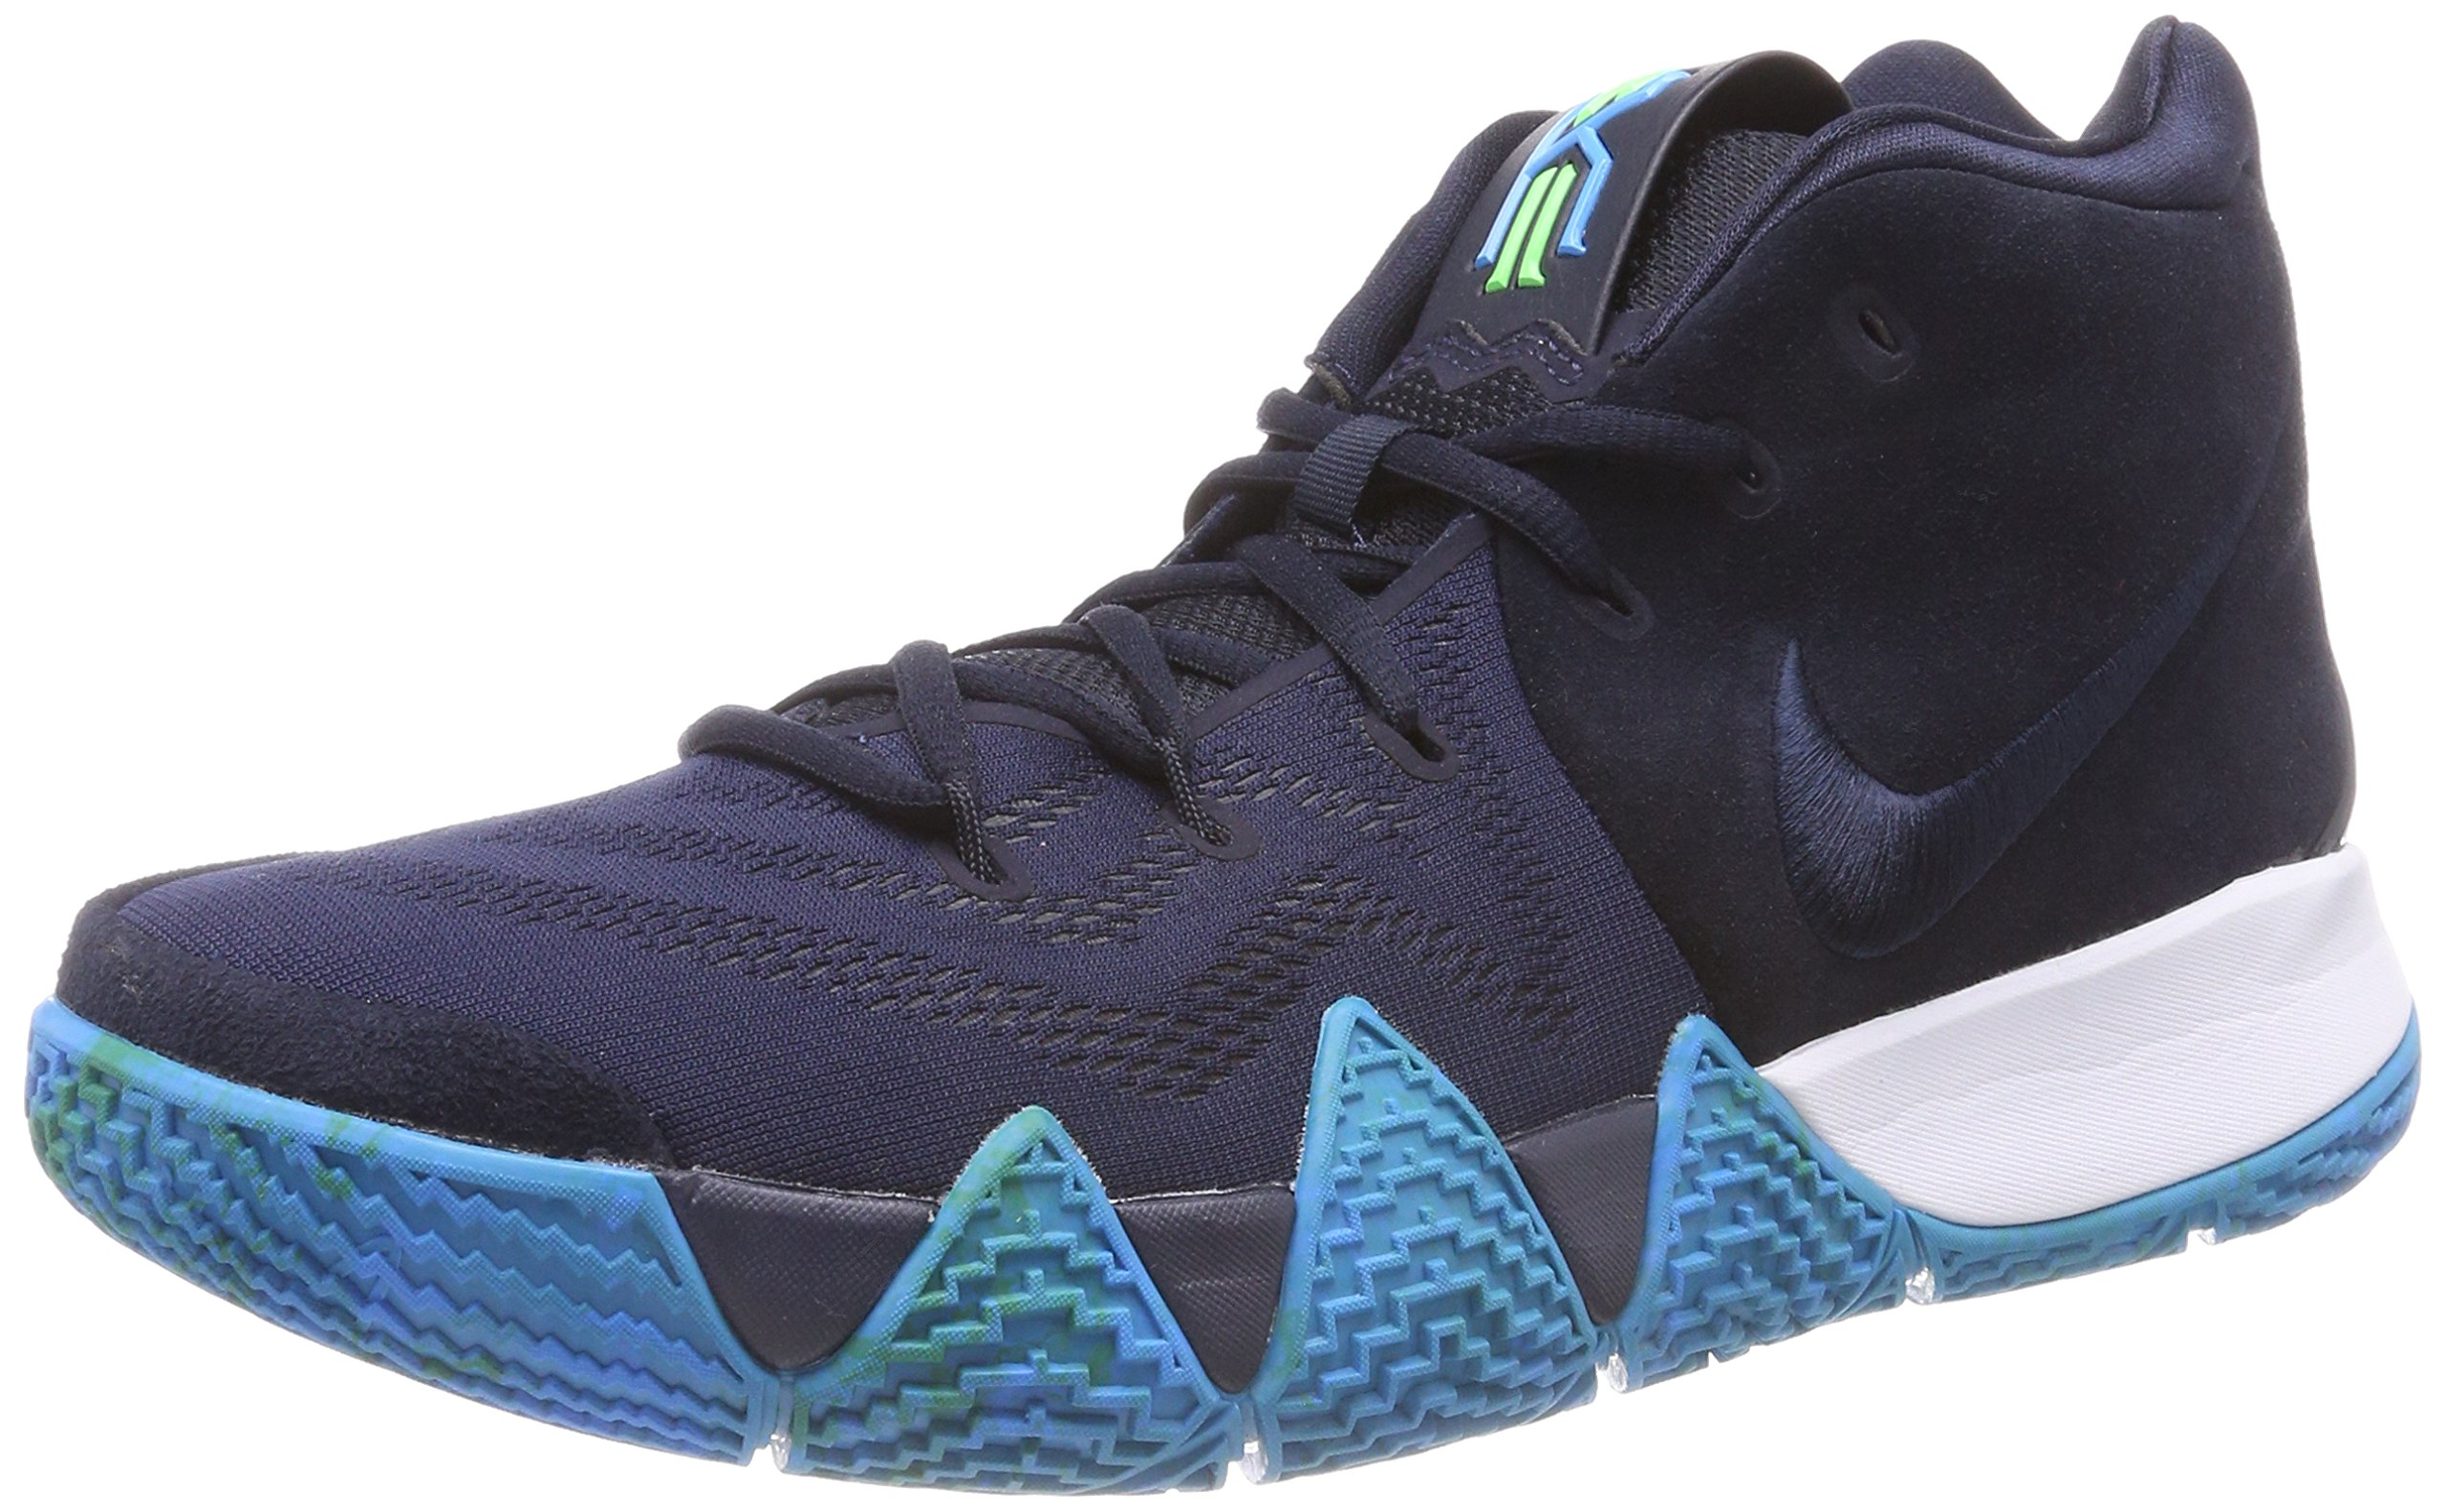 951044d0f56d Galleon - NIKE Men s Kyrie 4 Basketball Shoes (11.5